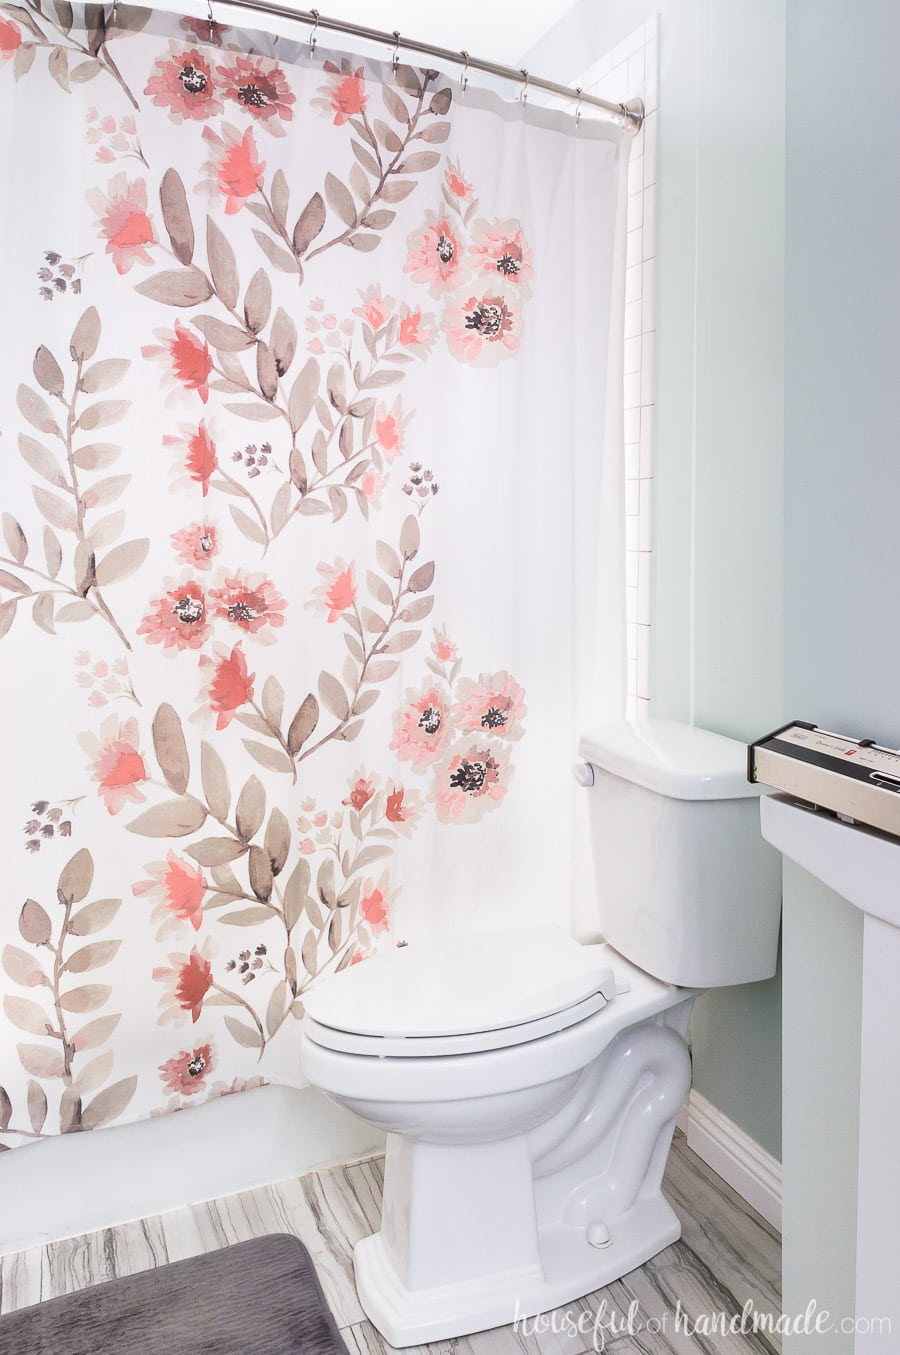 White shower curtain with coral flowers and brown leaves competes the spa-like master bathroom retreat.